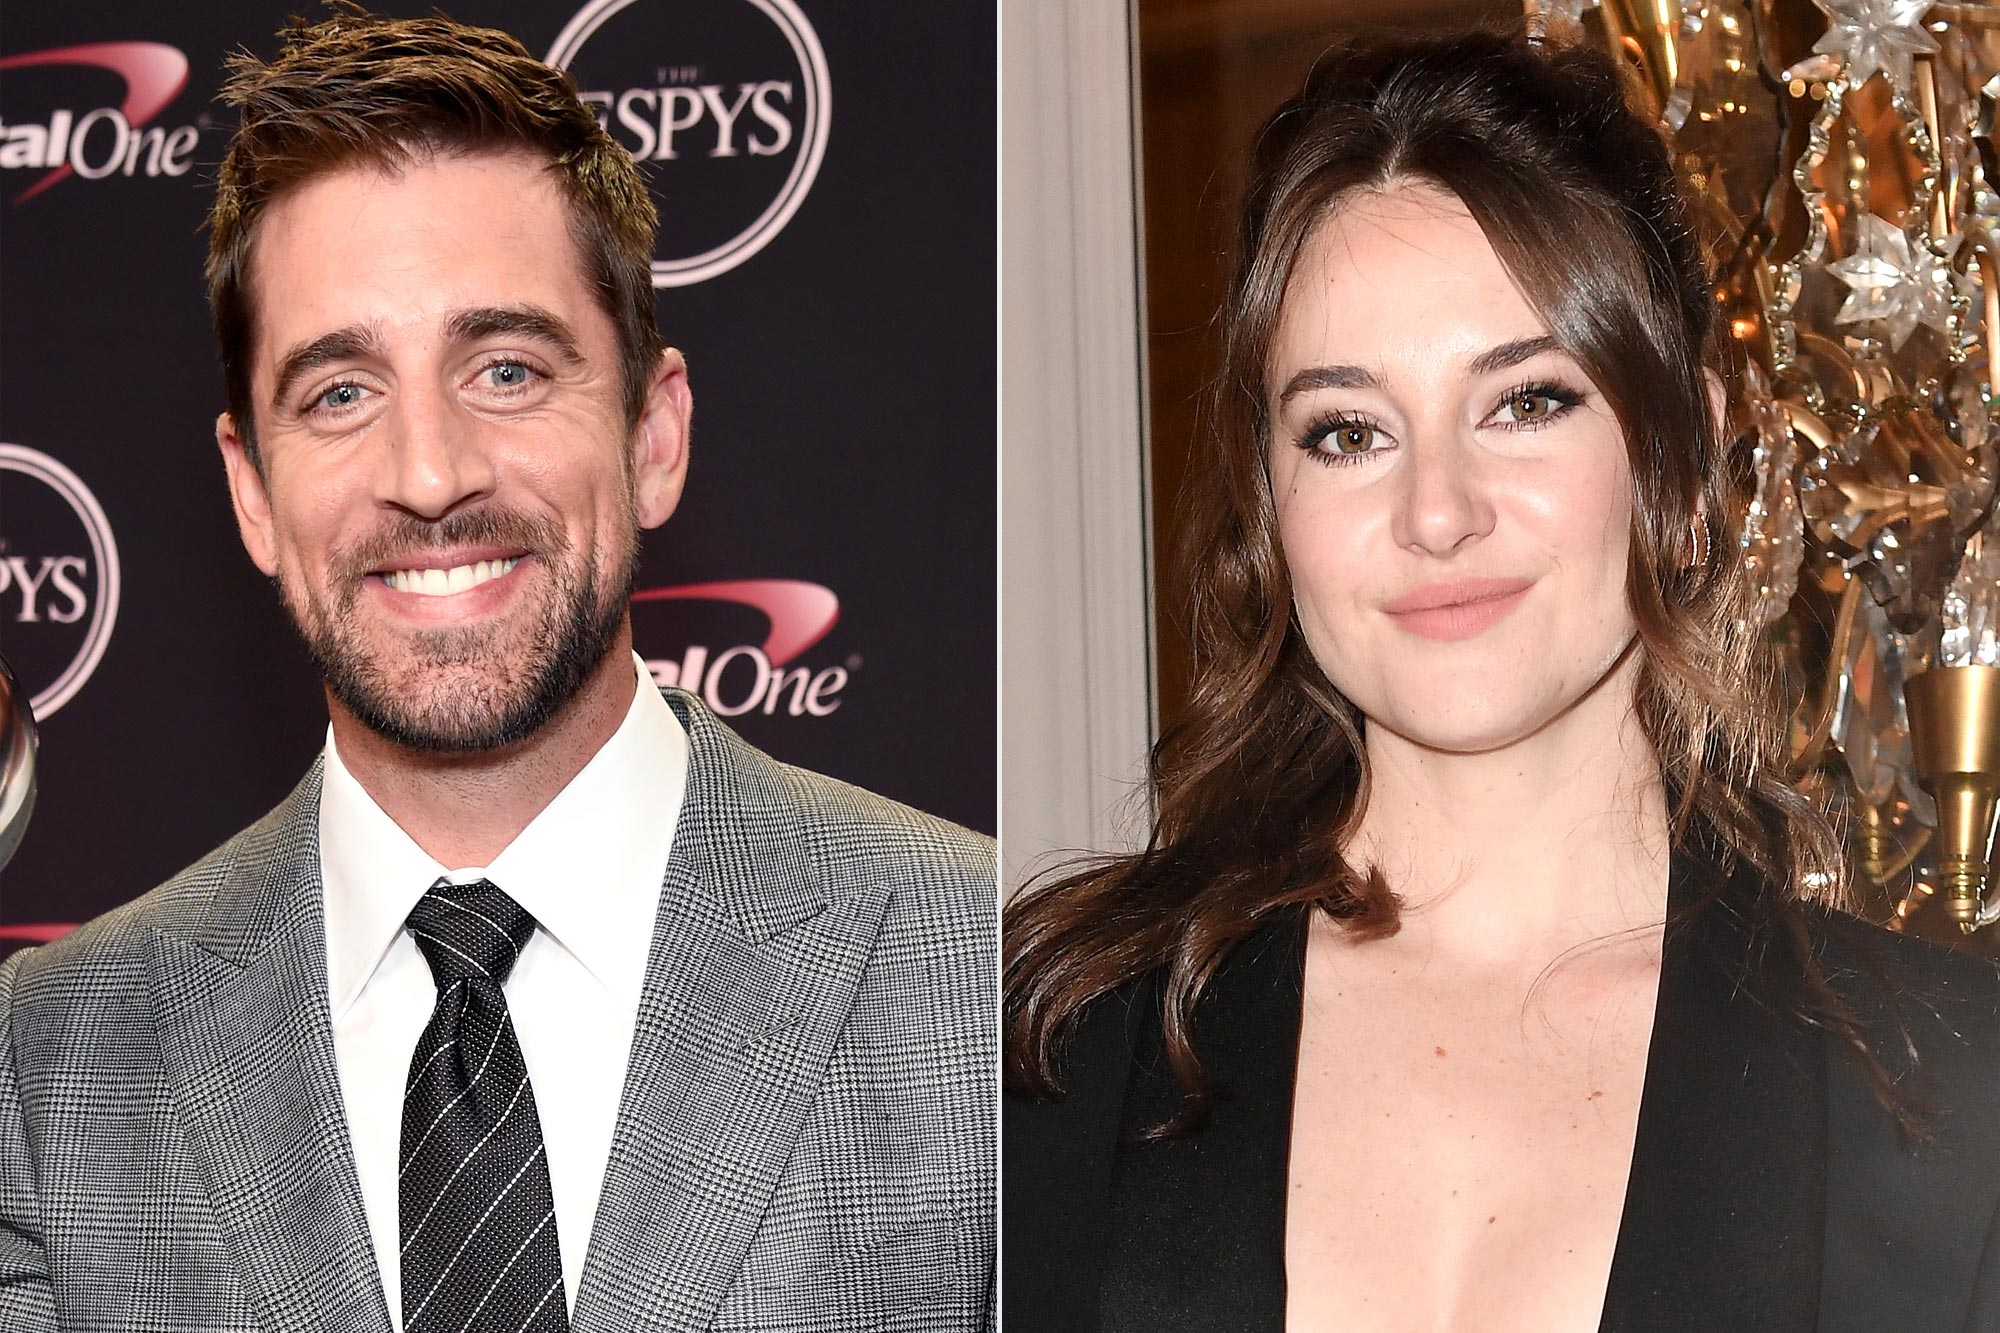 Aaron Rodgers and Shailene Woodley